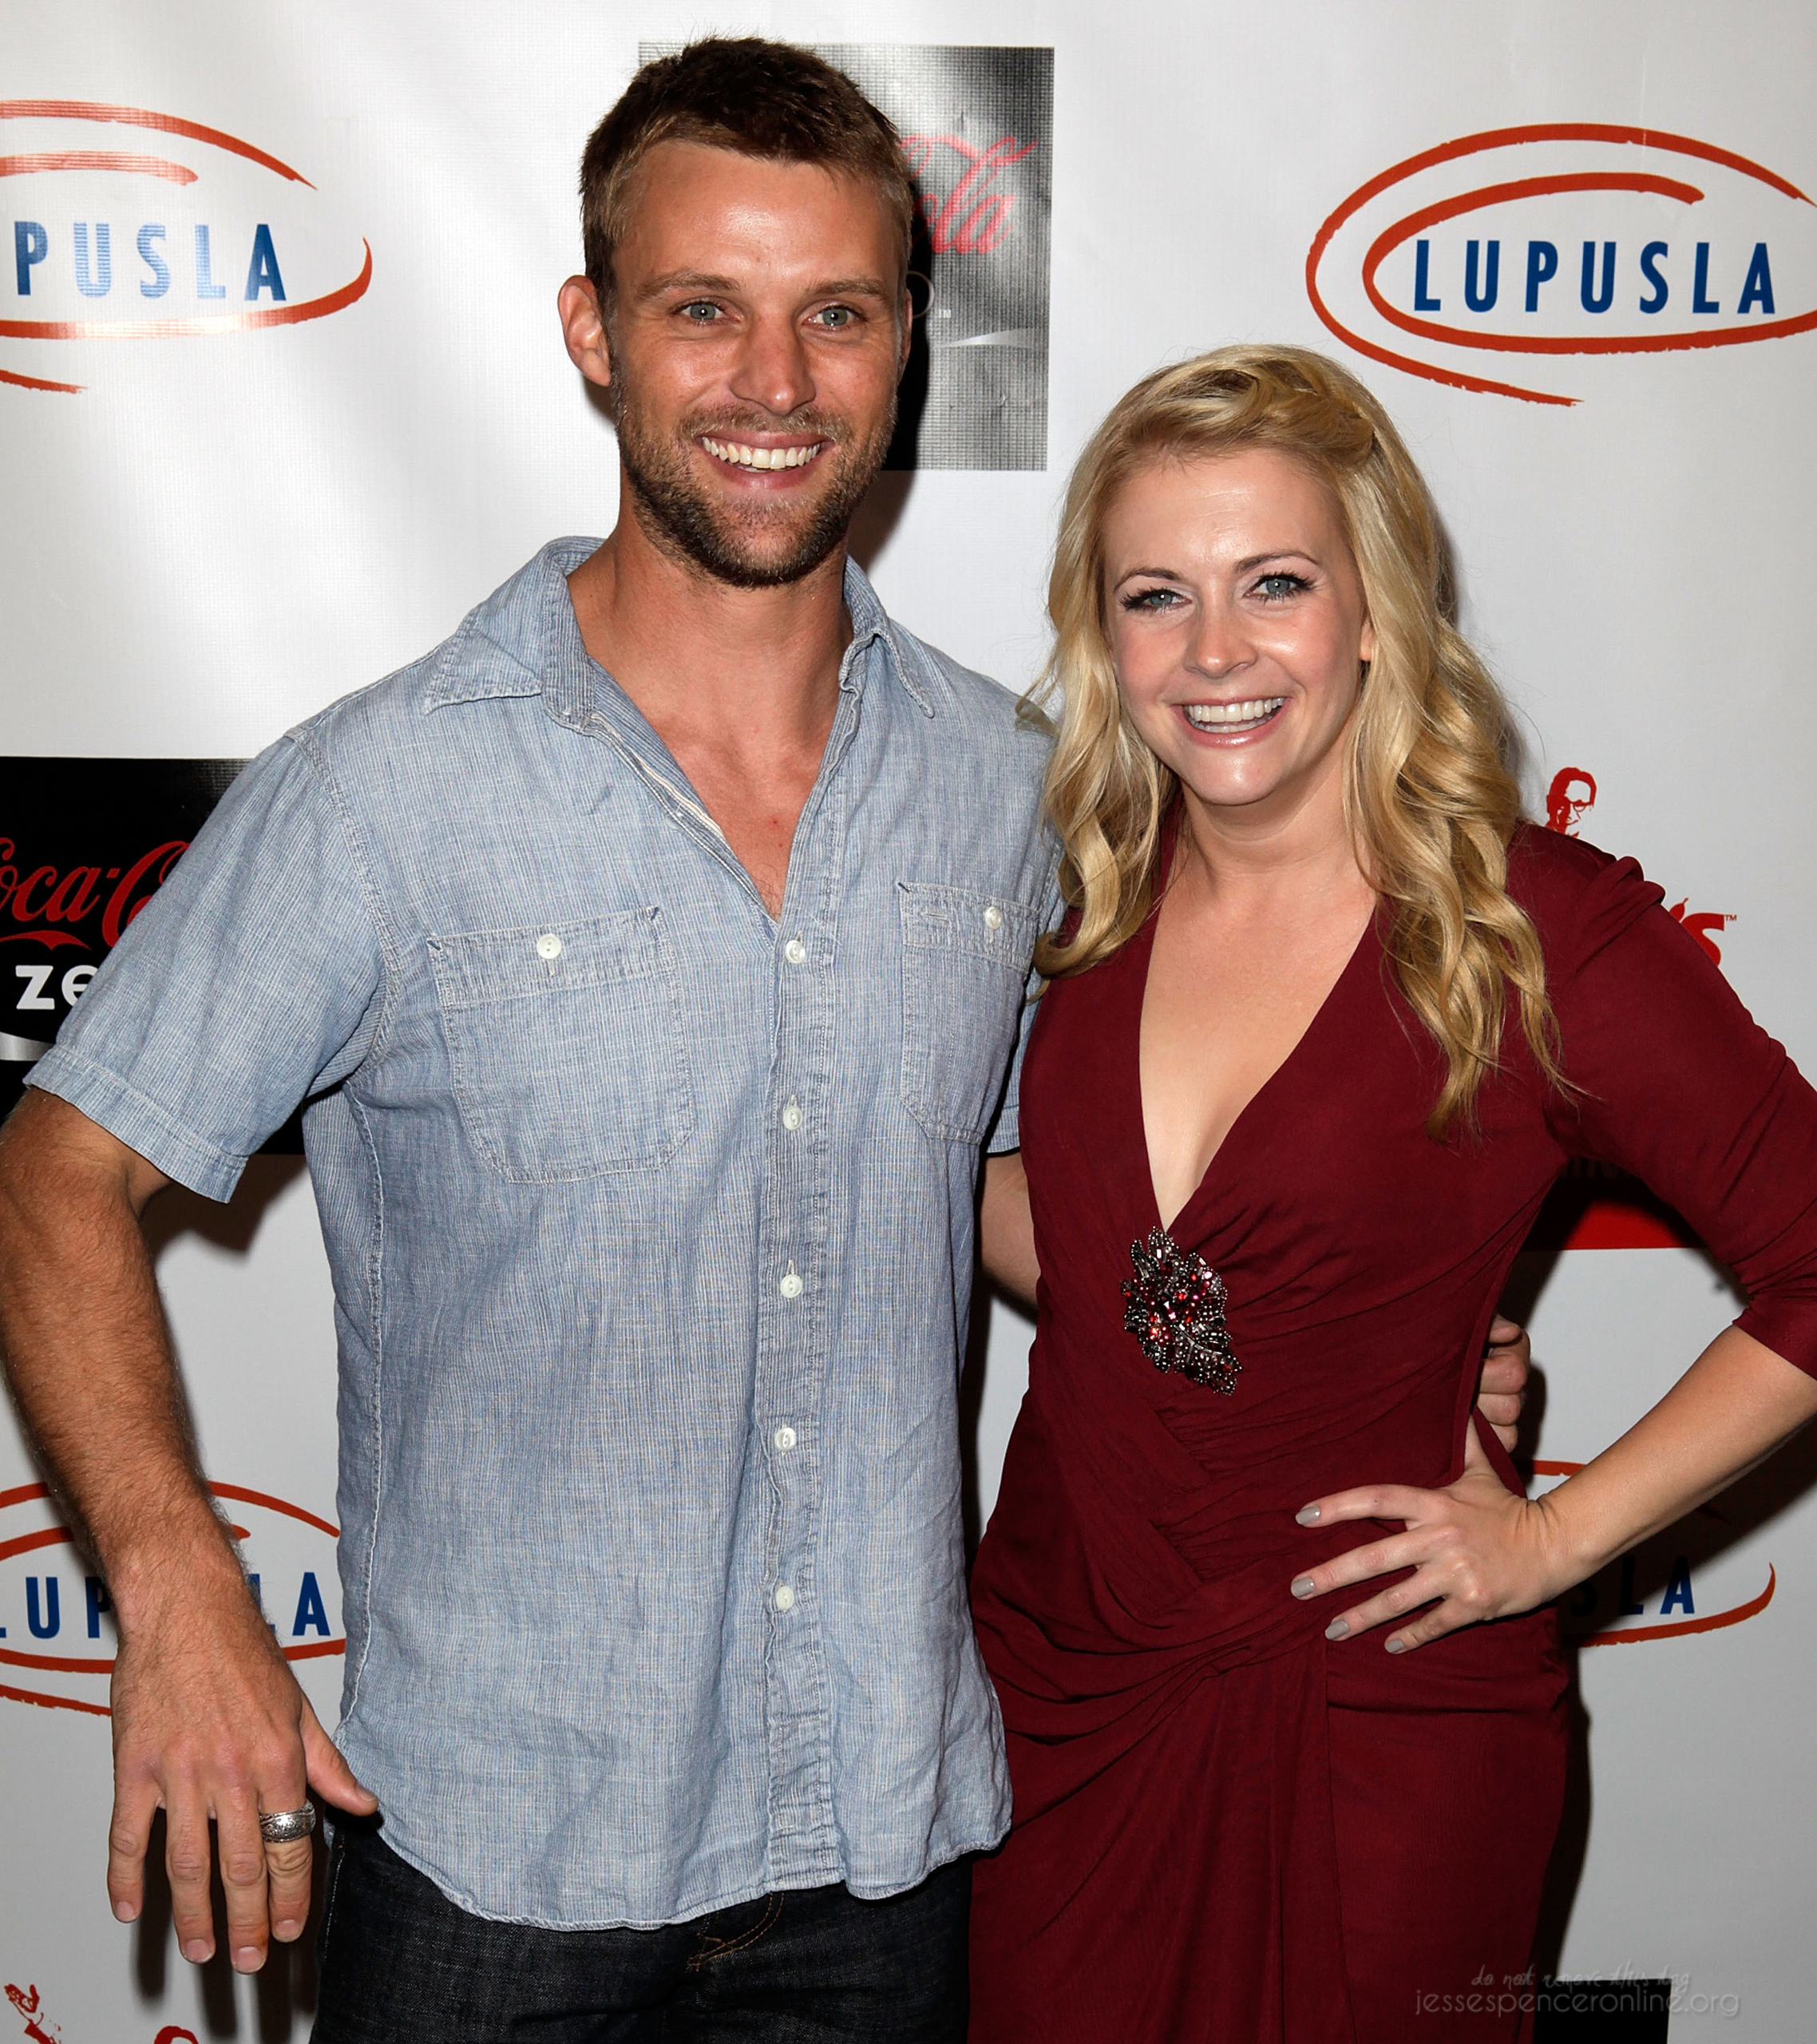 Get Lucky For Lupus LA Event [September 22, 2011]